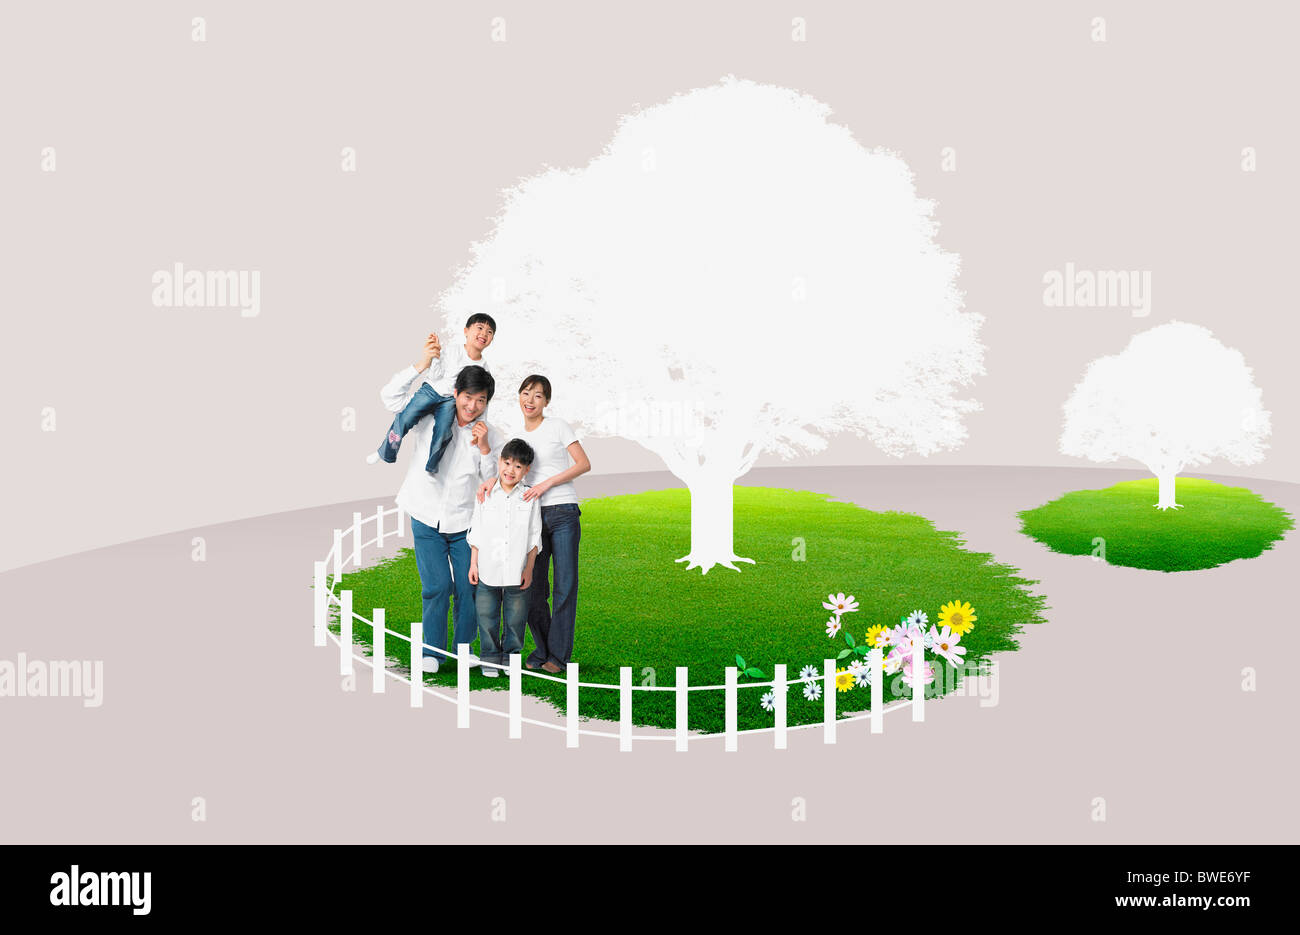 family in eco friendly background - Stock Image